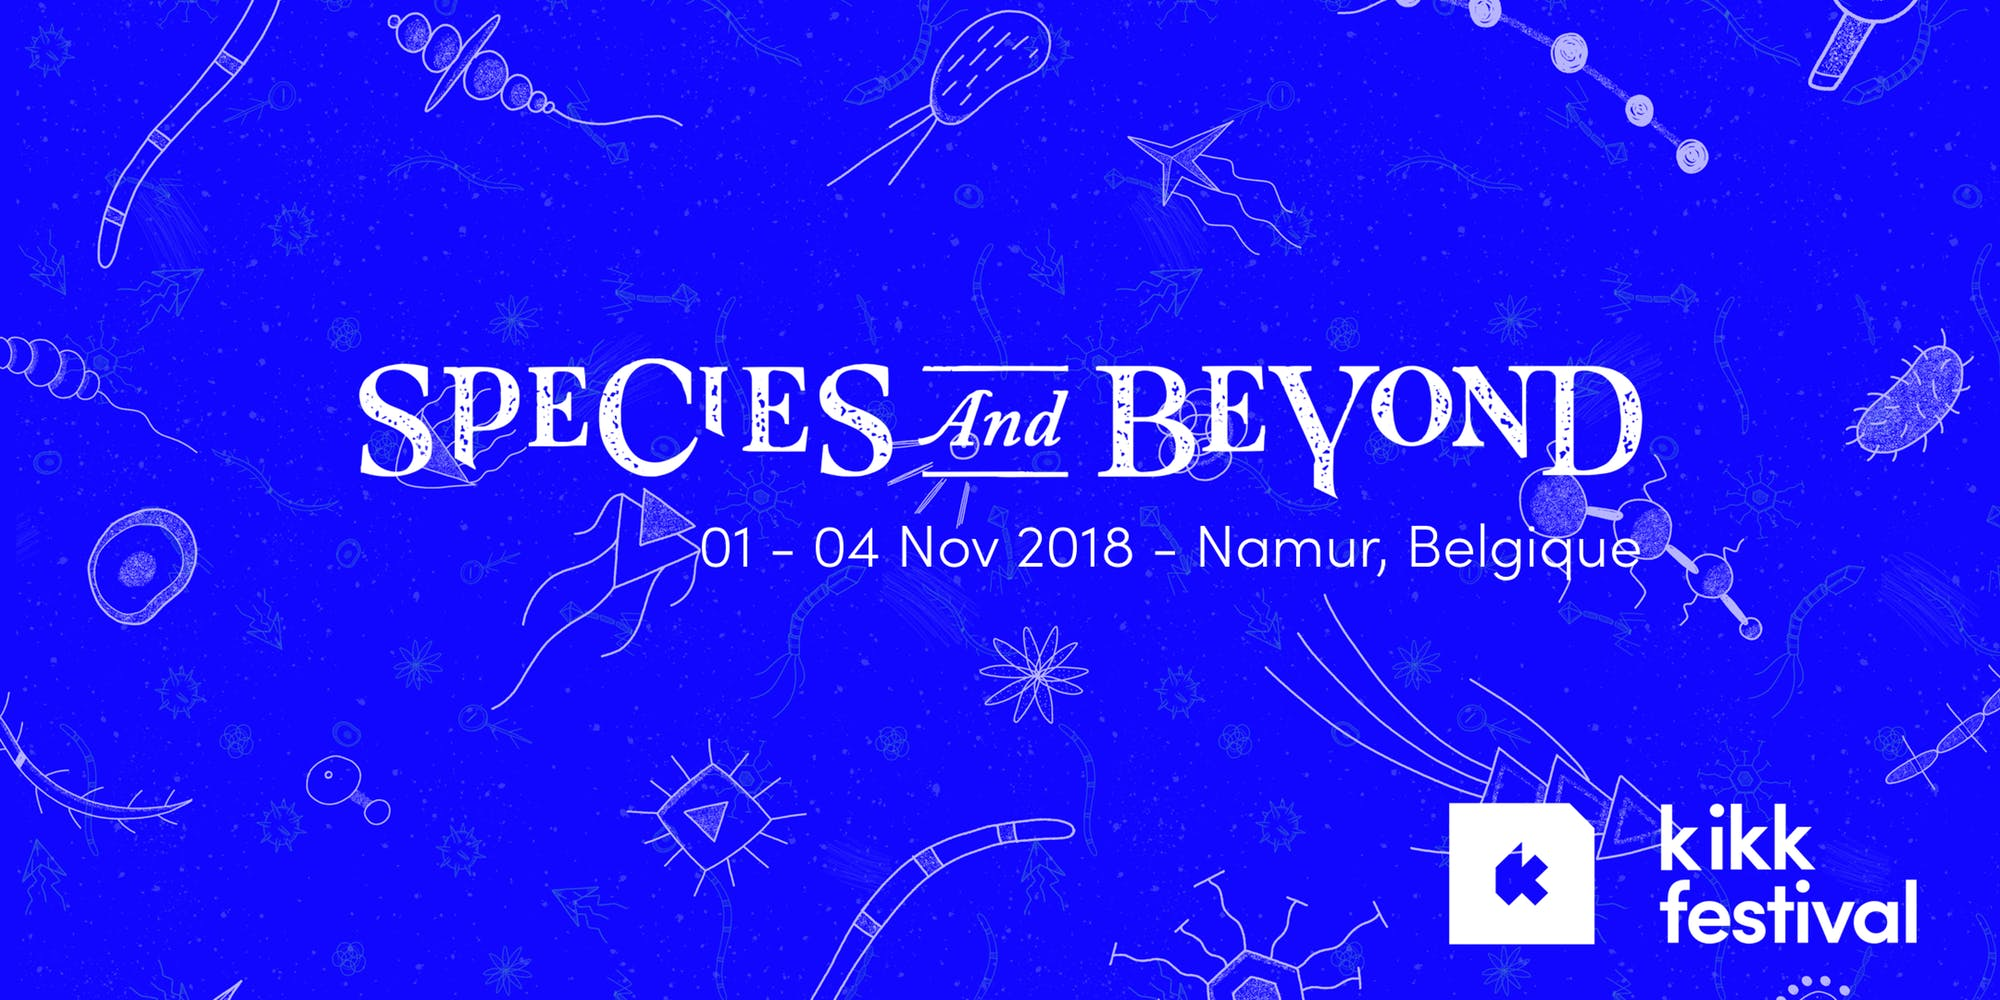 KIKK - Species and Beyond